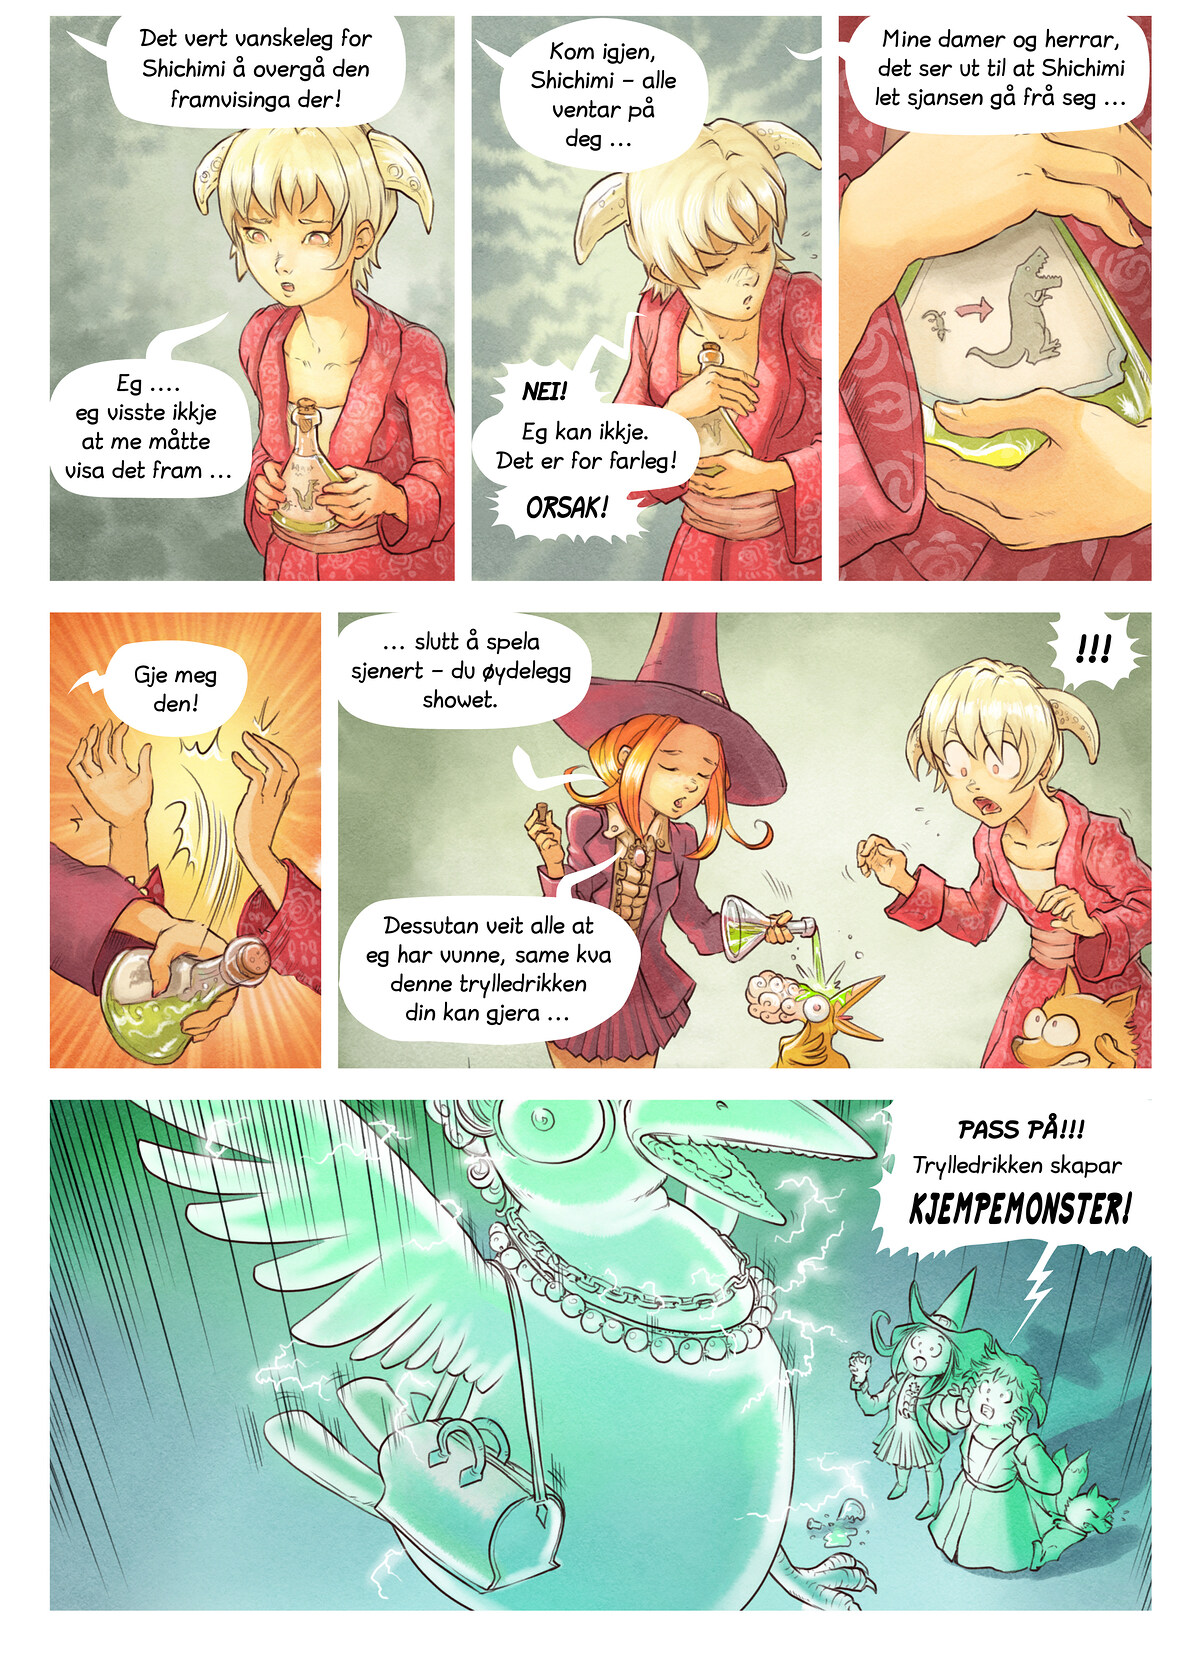 A webcomic page of Pepper&Carrot, episode 6 [nn], side 6